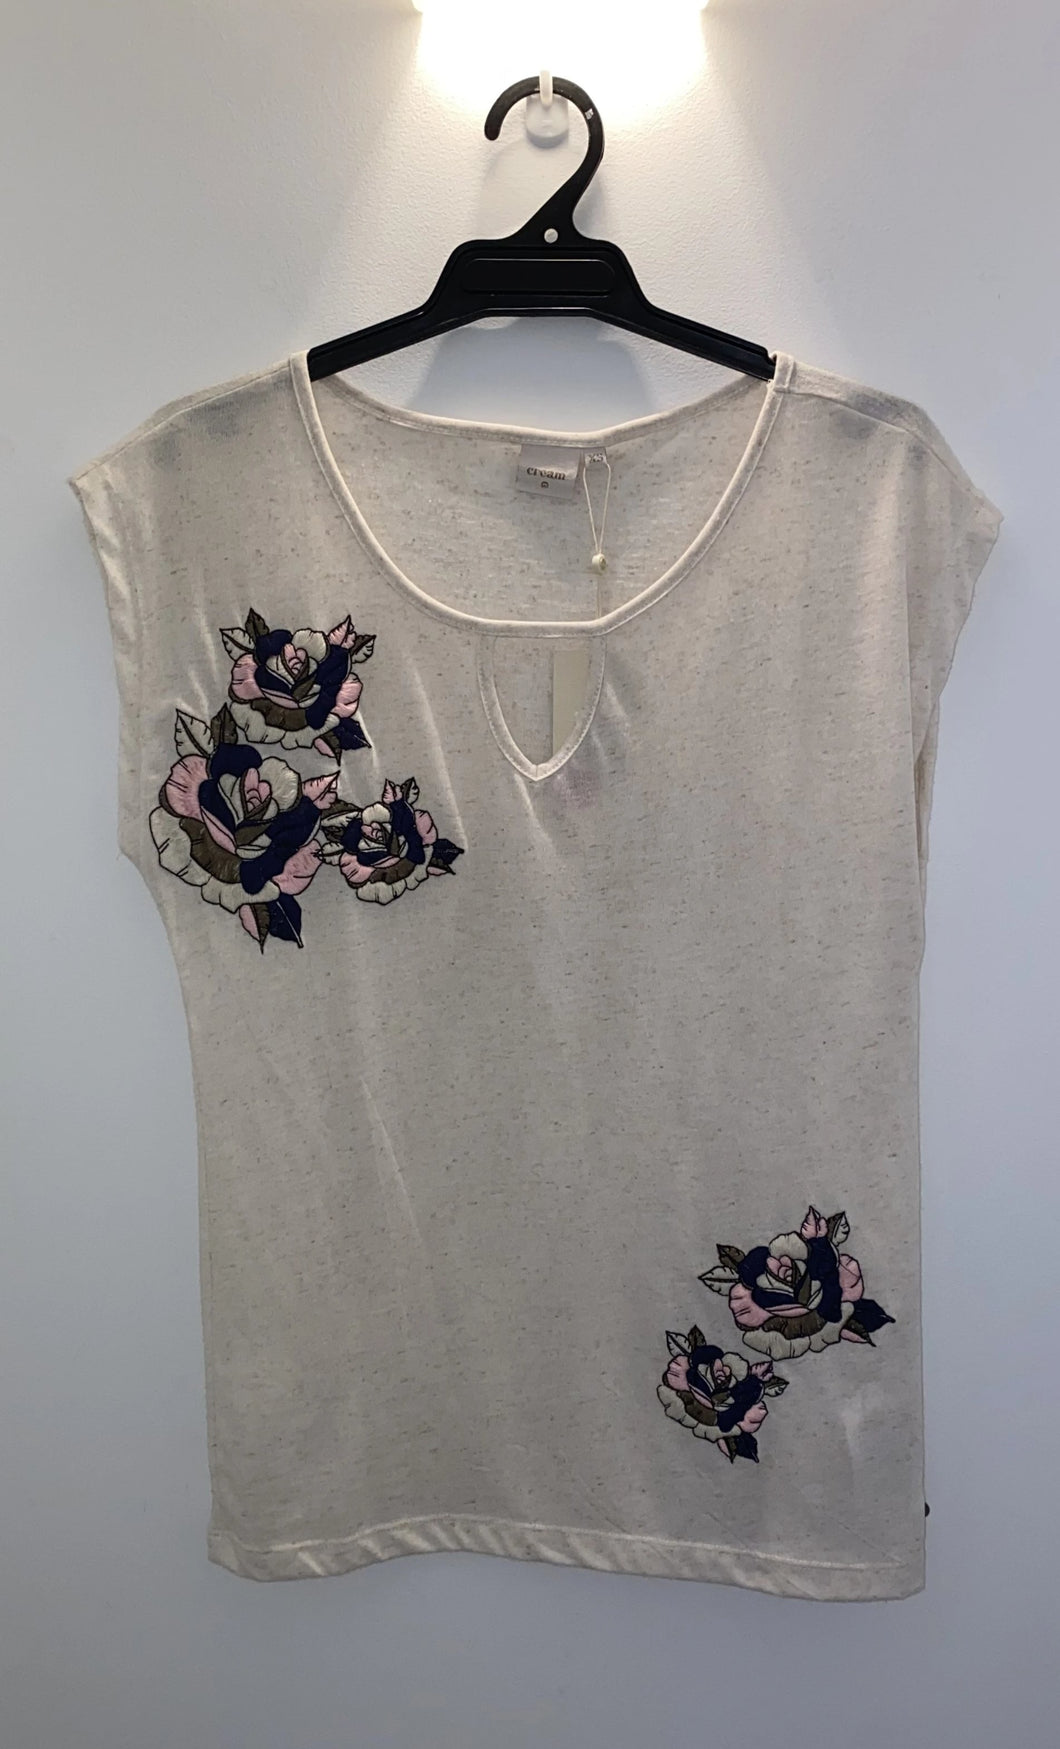 SALE Cream Embroidered Tee - Sizes:  L  XL